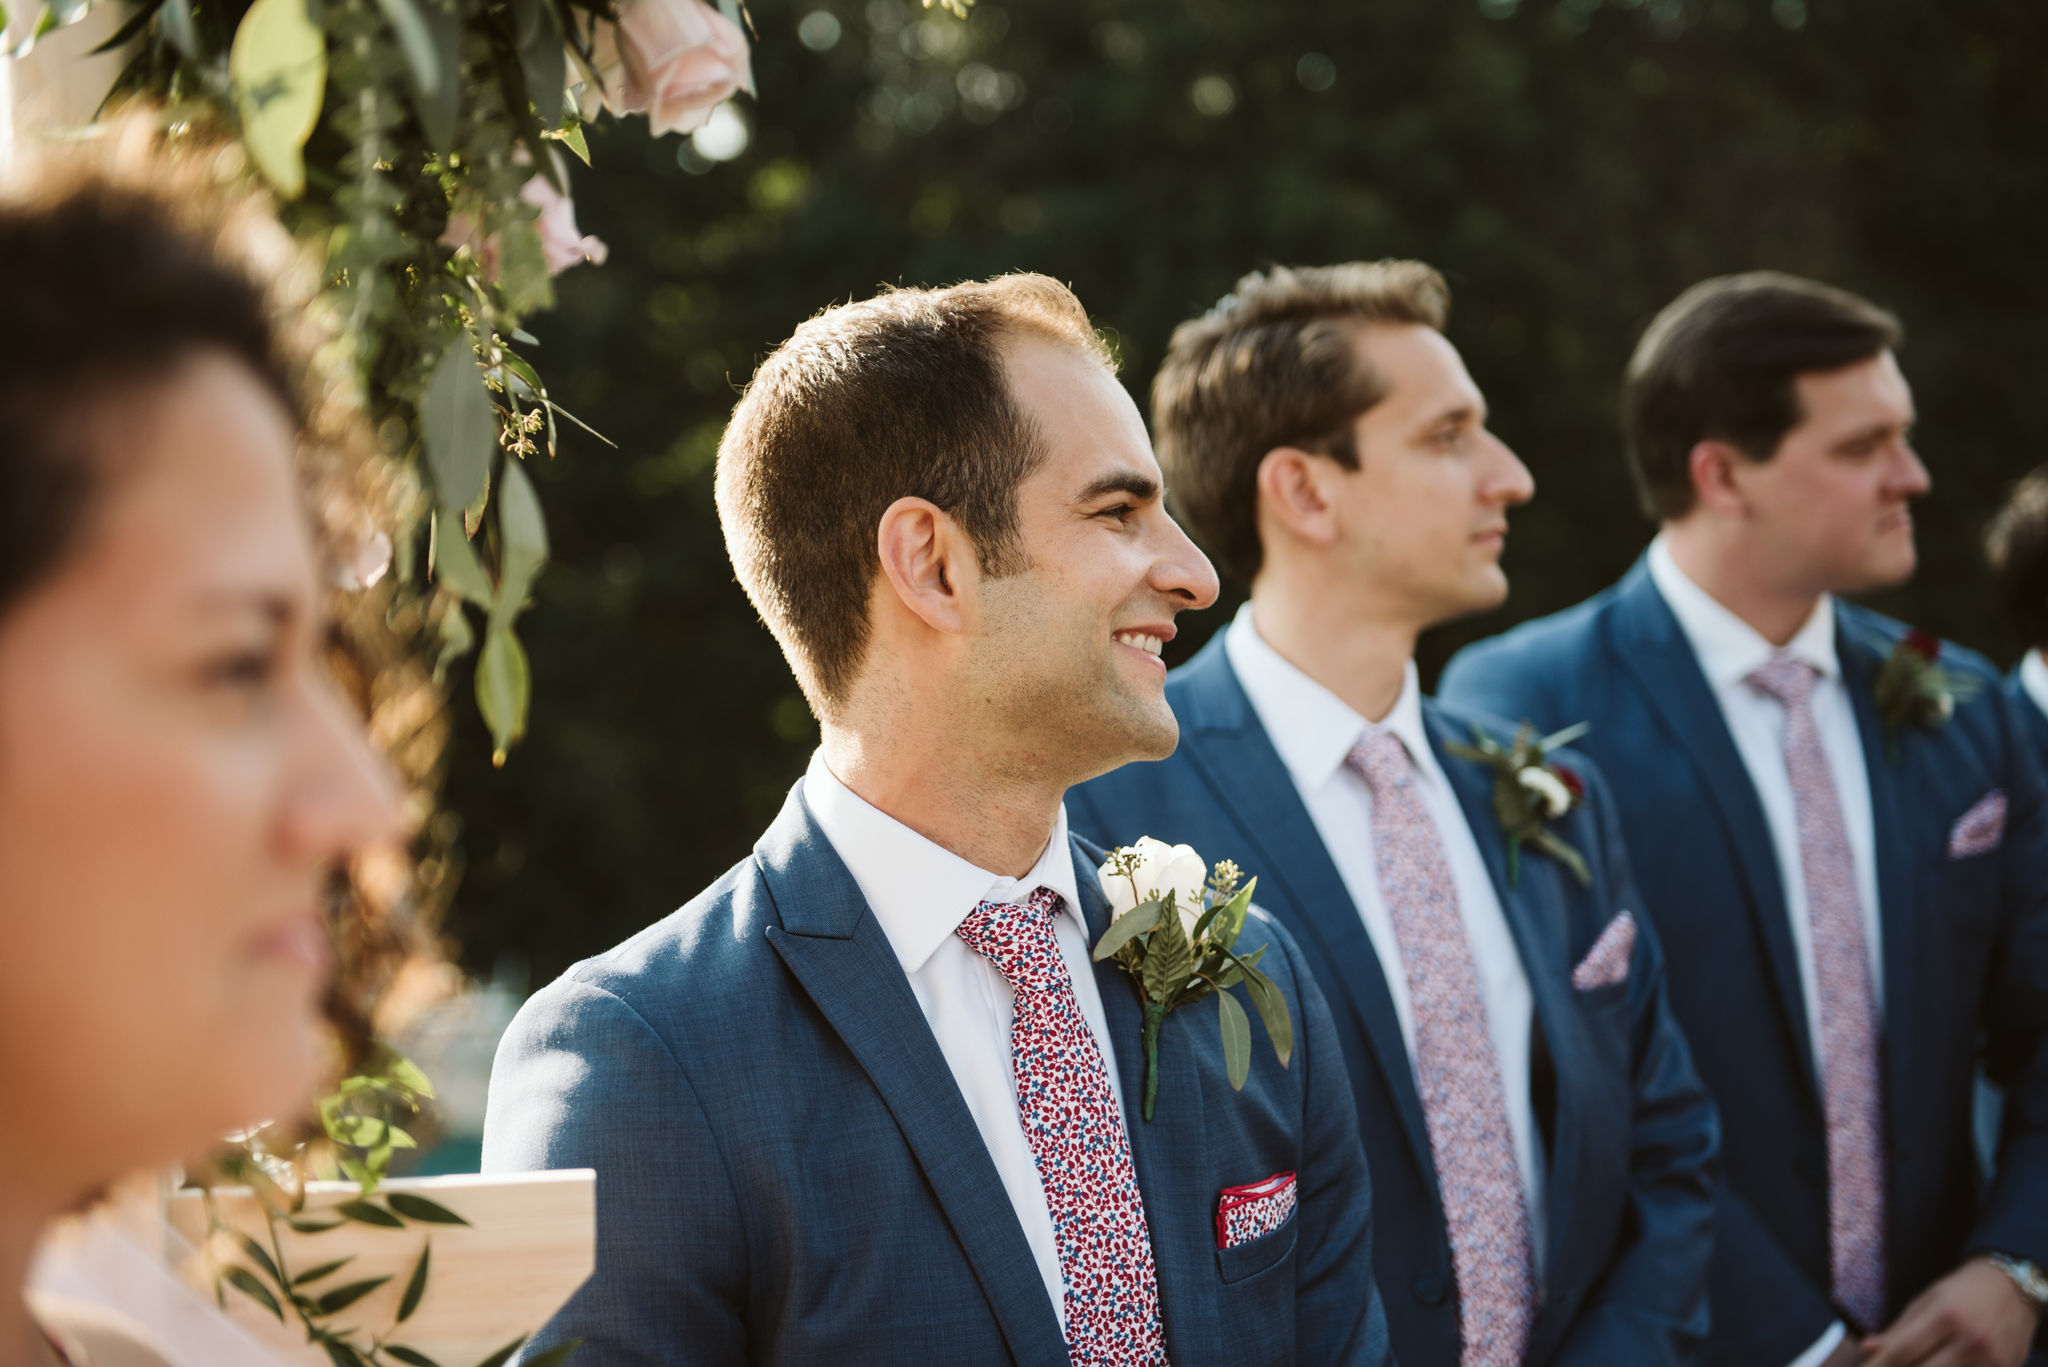 Phoenix Maryland, Baltimore Wedding Photographer, Eagle's Nest Country Club, Classic, Romantic, Groom Waiting for Bride at the Altar, Blue Generation Tux Suit, Polka Dot Knotty Tie